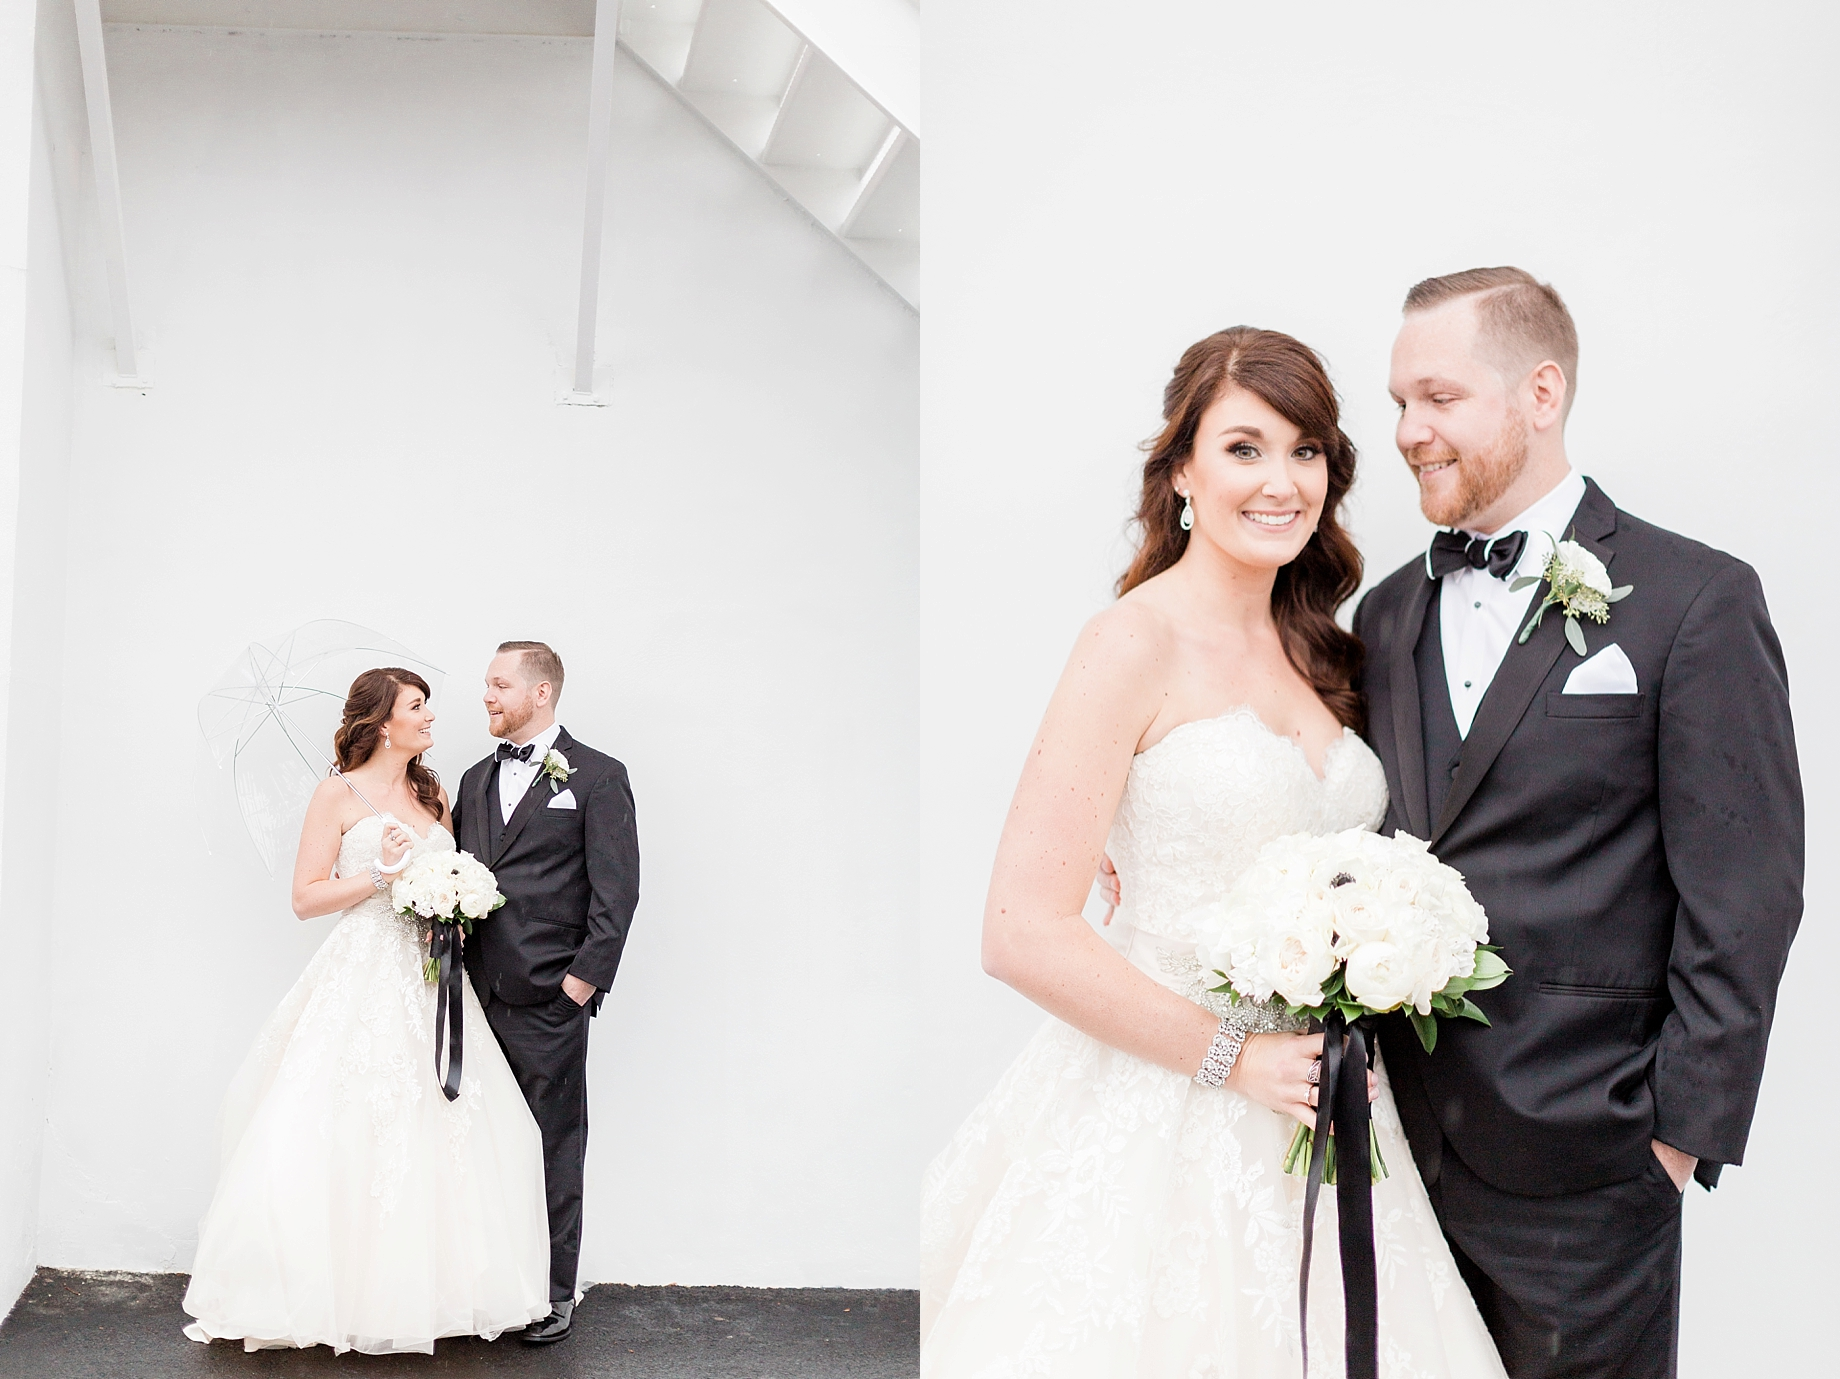 Wedding portraits in the rain | William Penn Inn Wedding